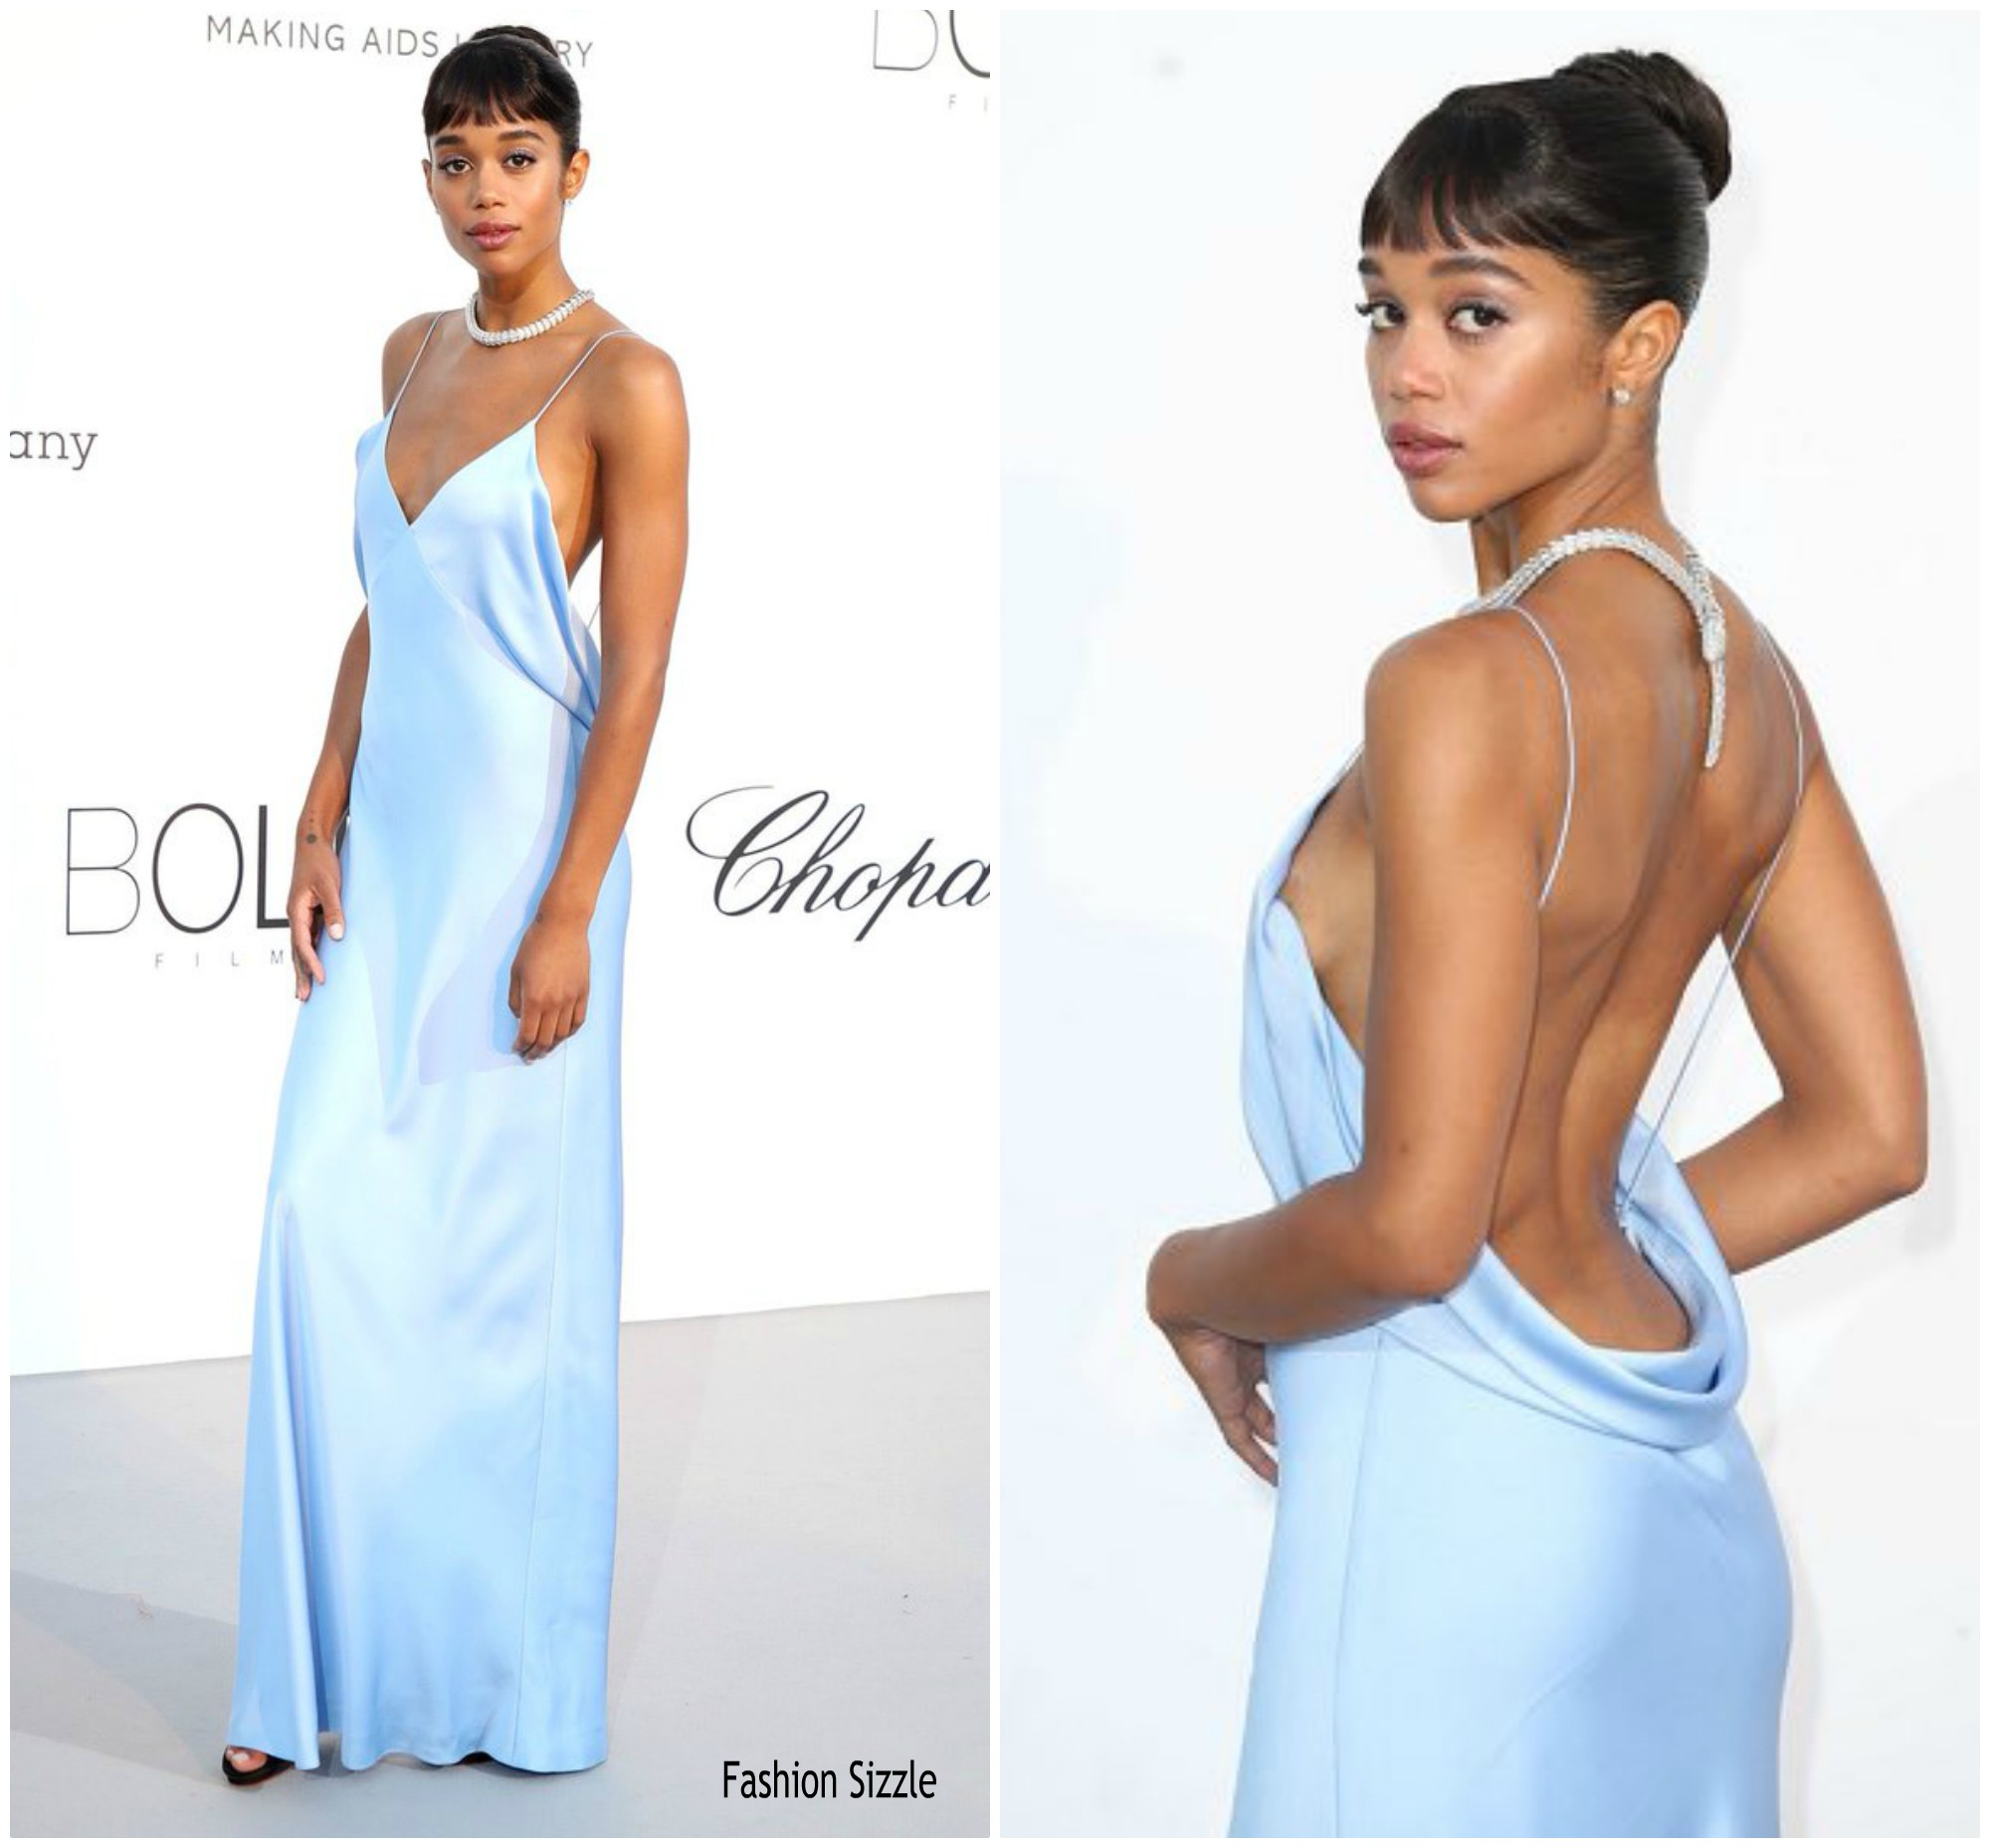 laura-harrier-in-the-row-amfar-gala-cannes-2018